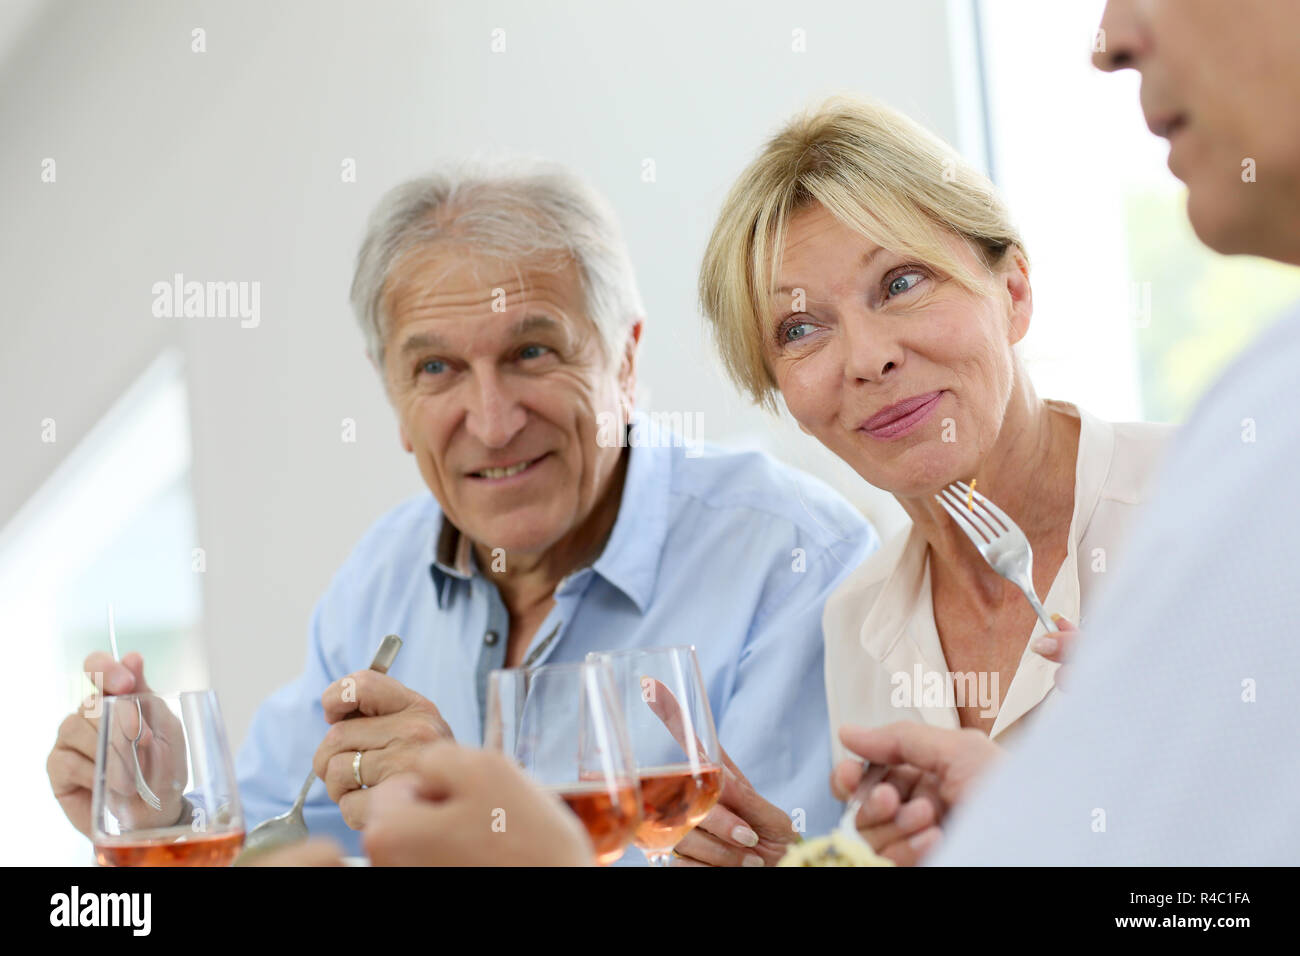 Portrait of senior people at lunch time - Stock Image